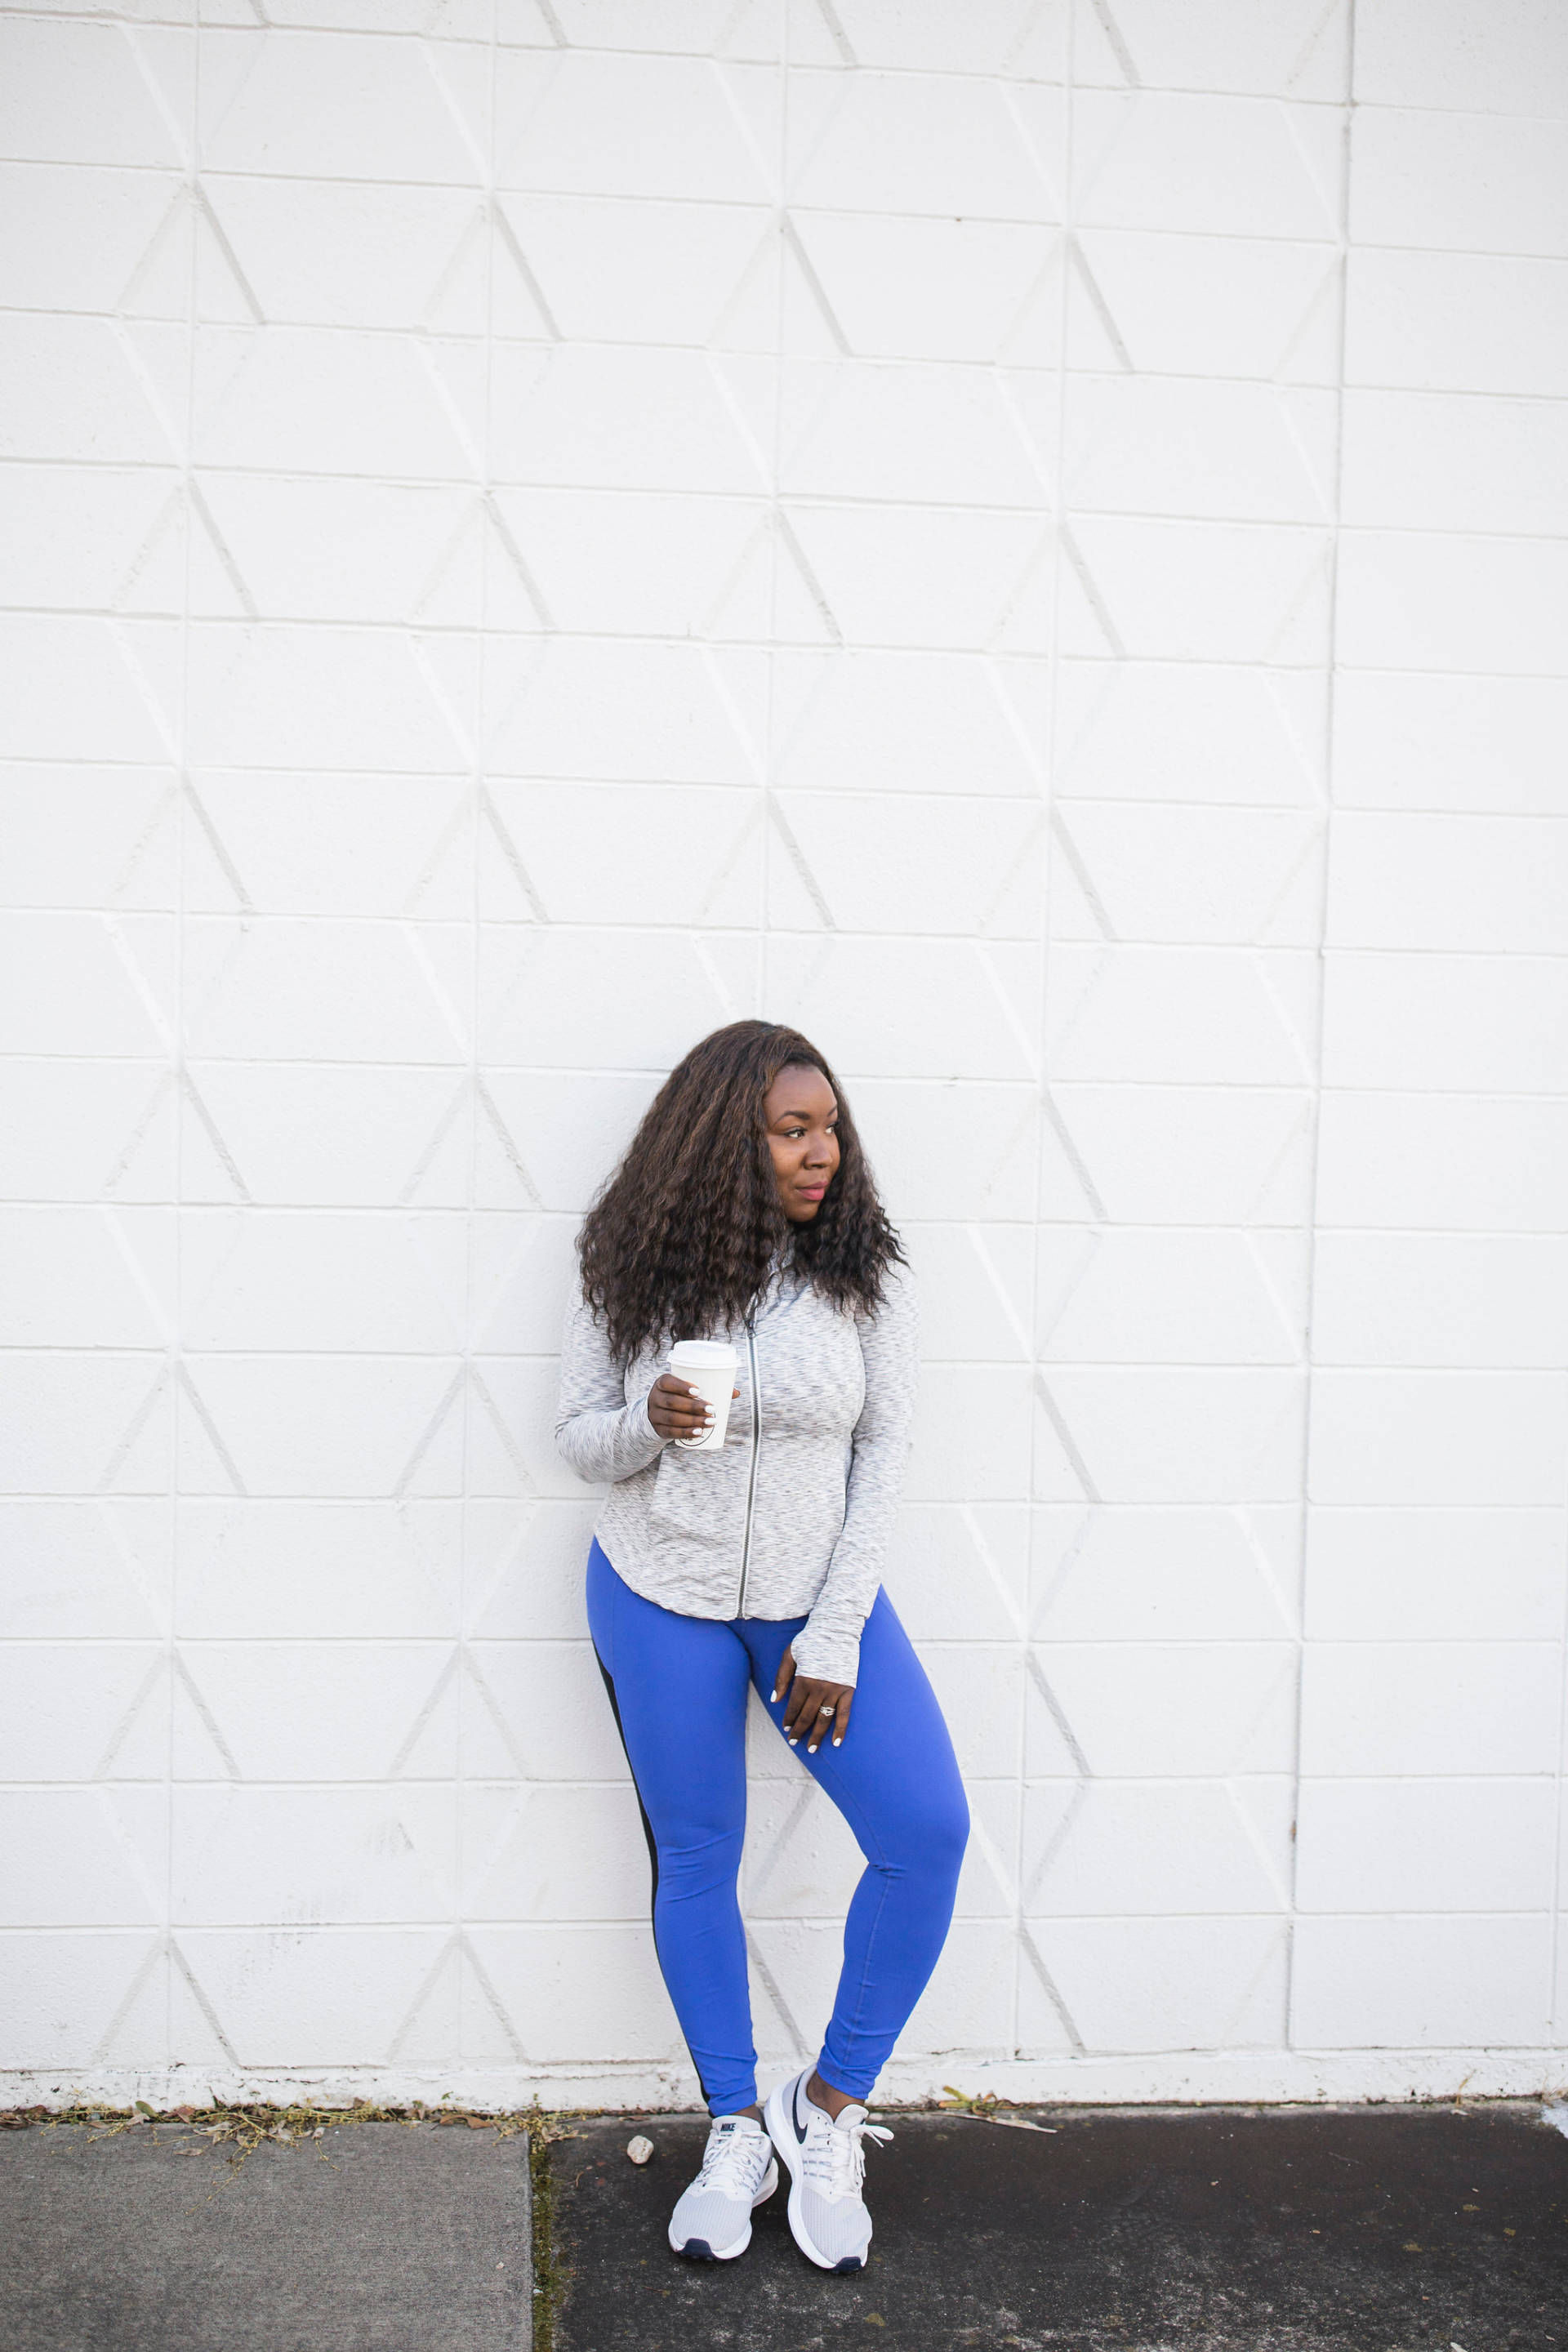 Ruthie leggings: comfort, functionality, and style at an affordable price! 3 colors, one style!